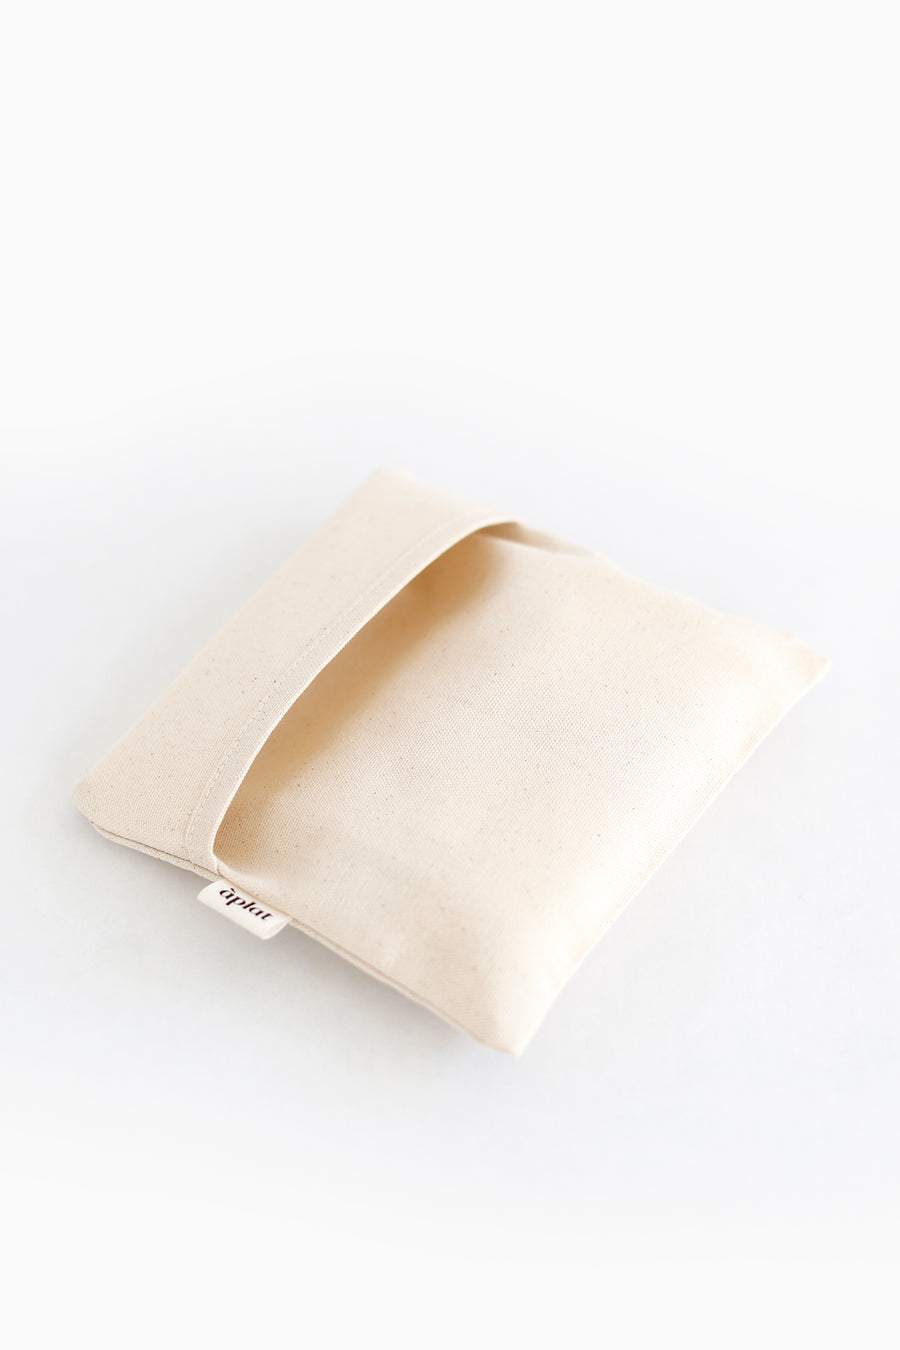 Pochette | Snack & Sandwich Bag